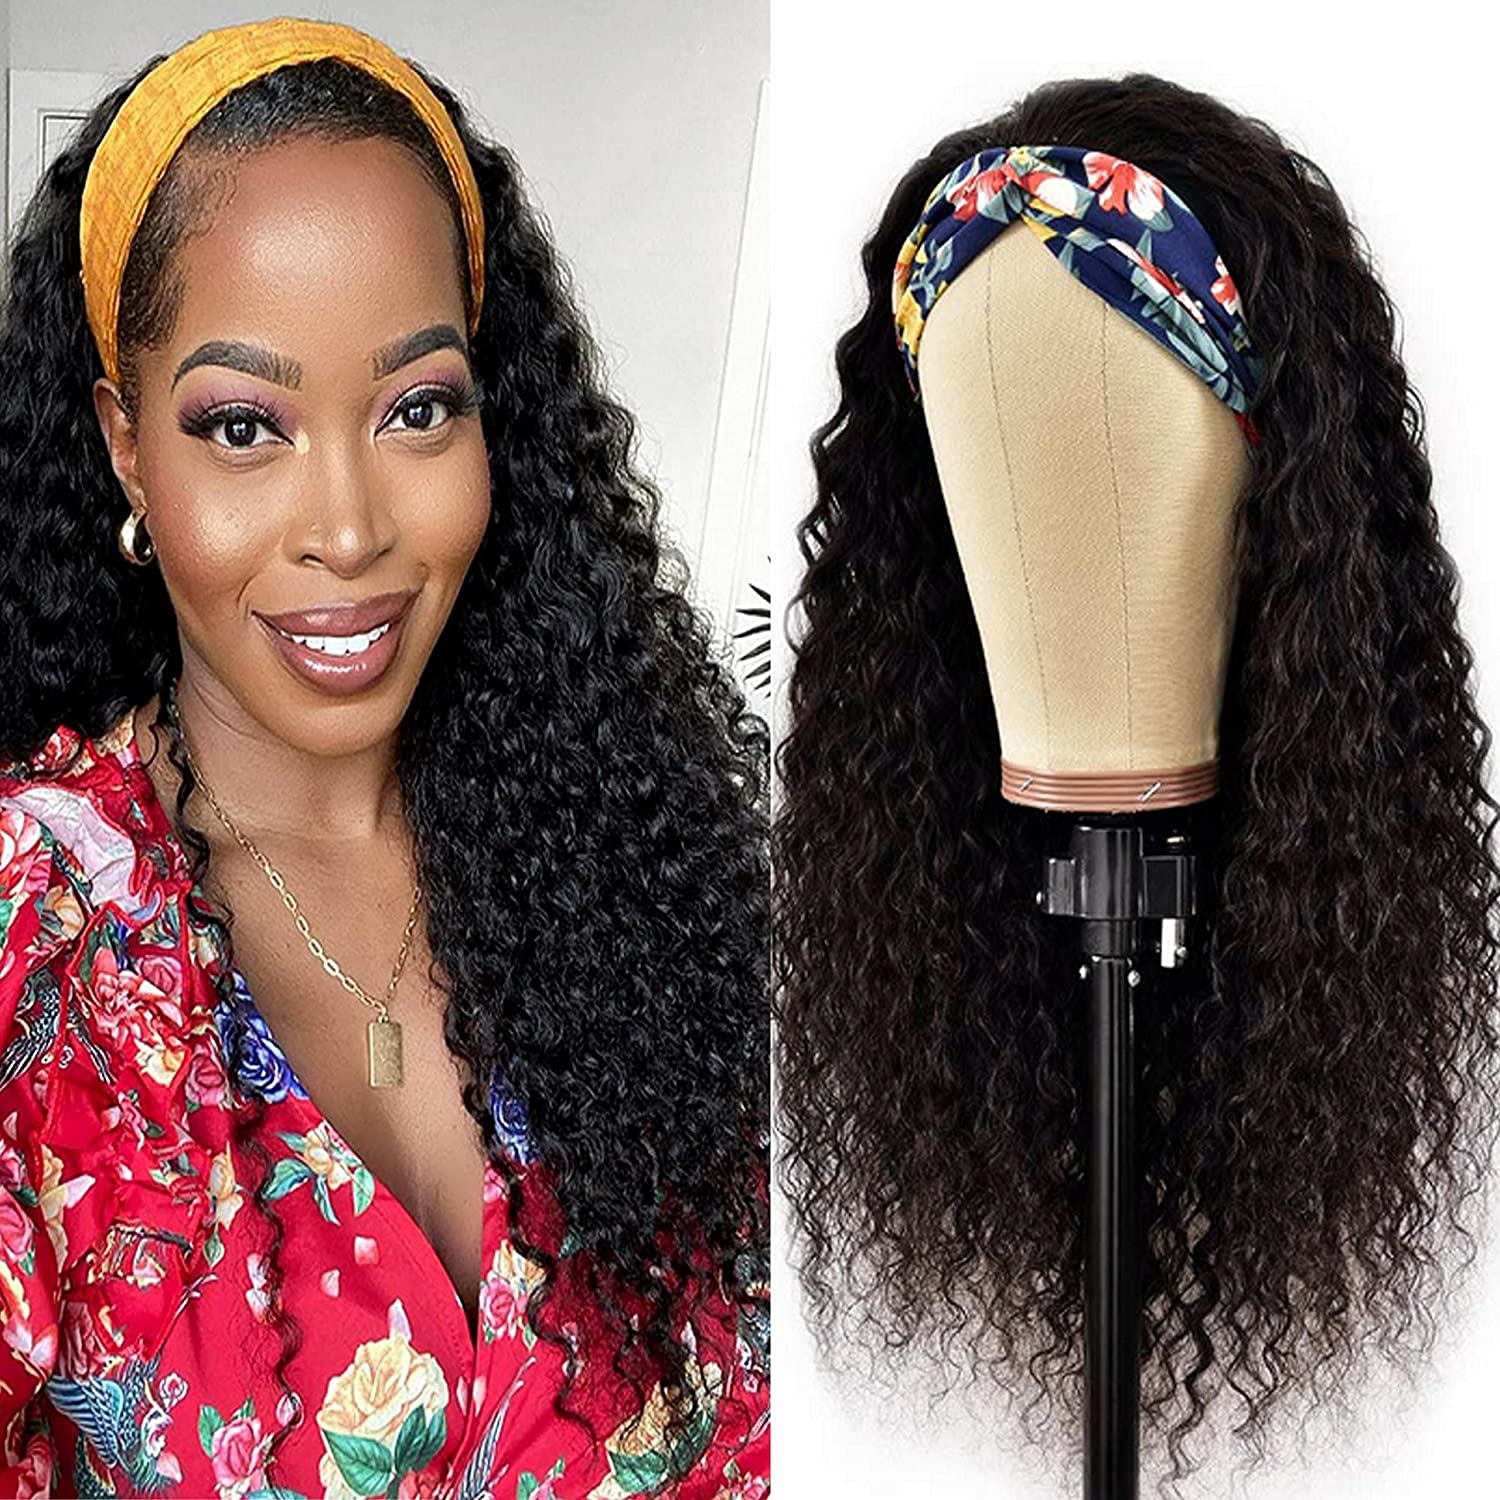 Lovenea Large special price !! Headband Wig Human Hair Deep Front Curly Superior Wave None Lace